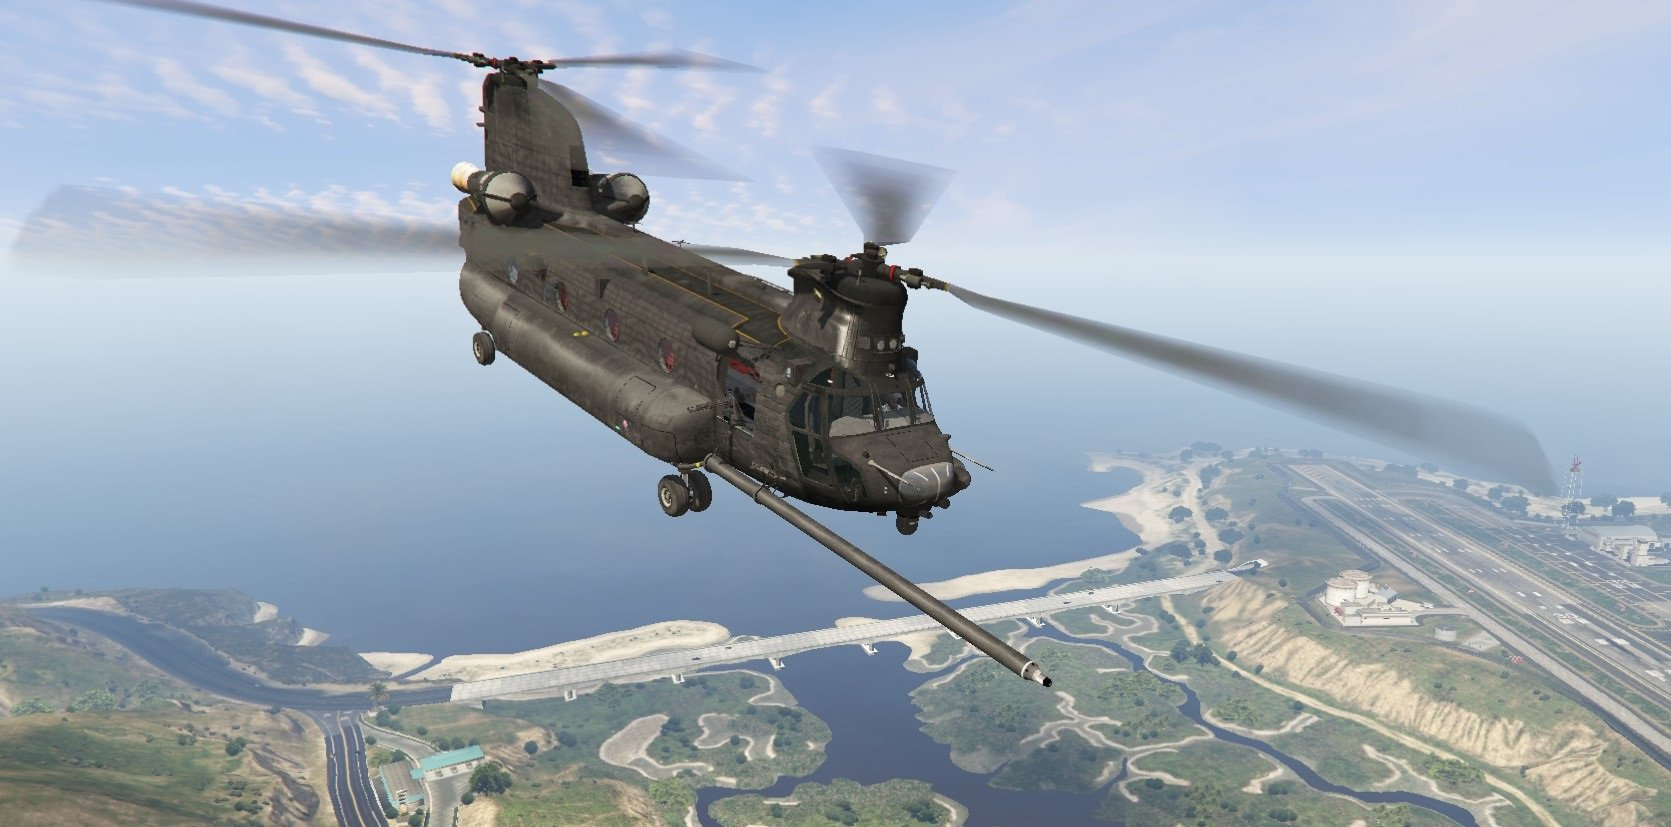 gta v helicopter with Mh 47g Chinook on 17017 Mi 17 Voennyy in addition Watch likewise Watch furthermore Watch furthermore Mh 47g Chinook.